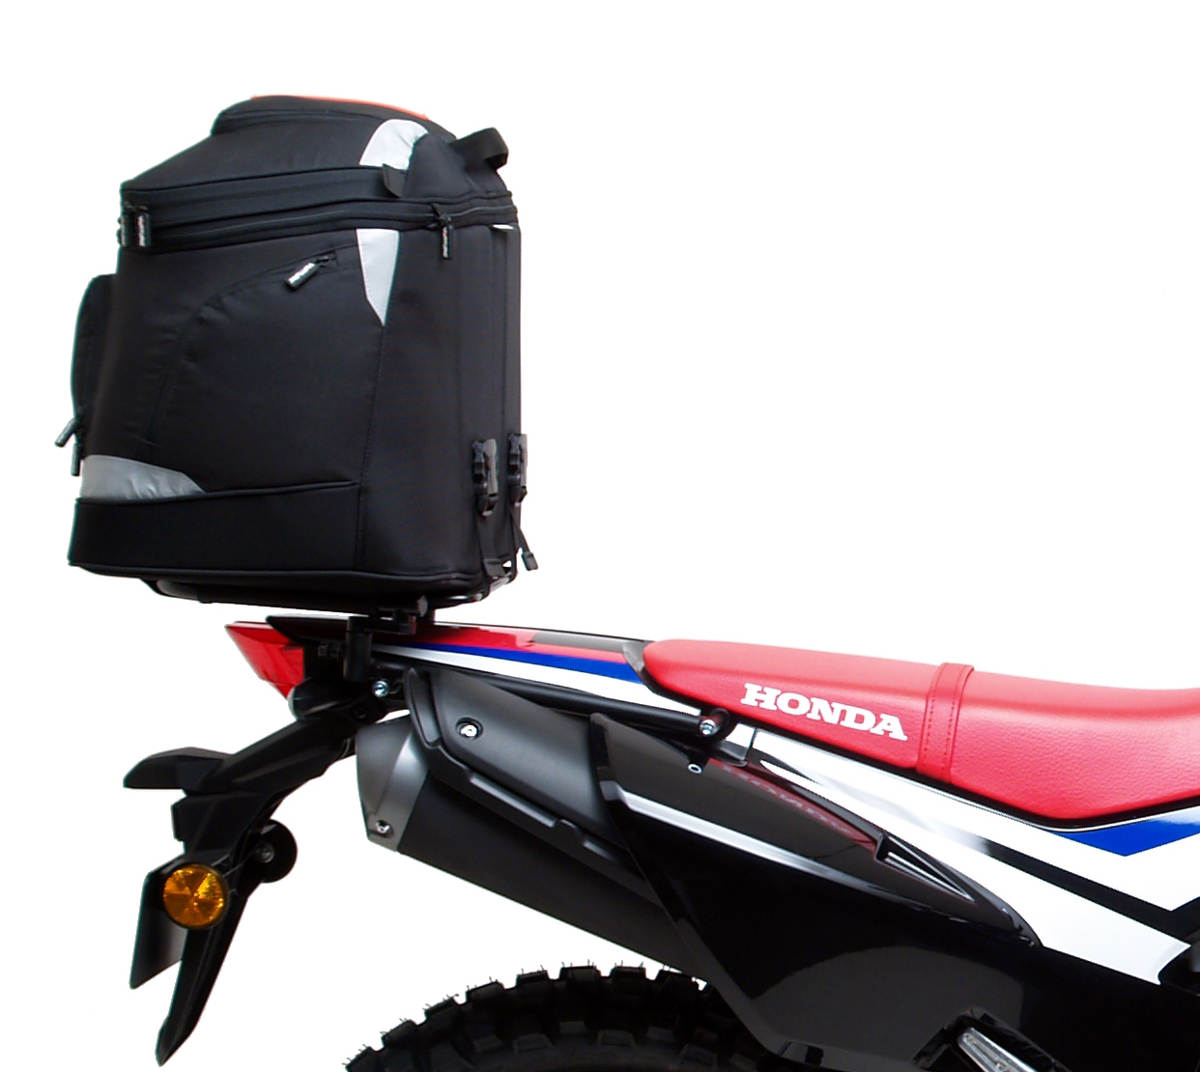 Honda CRF 250L Gets The Ventura Bike-Pack Luggage System for the Honda CRF 250 L fitted with the EVO-40 Pack